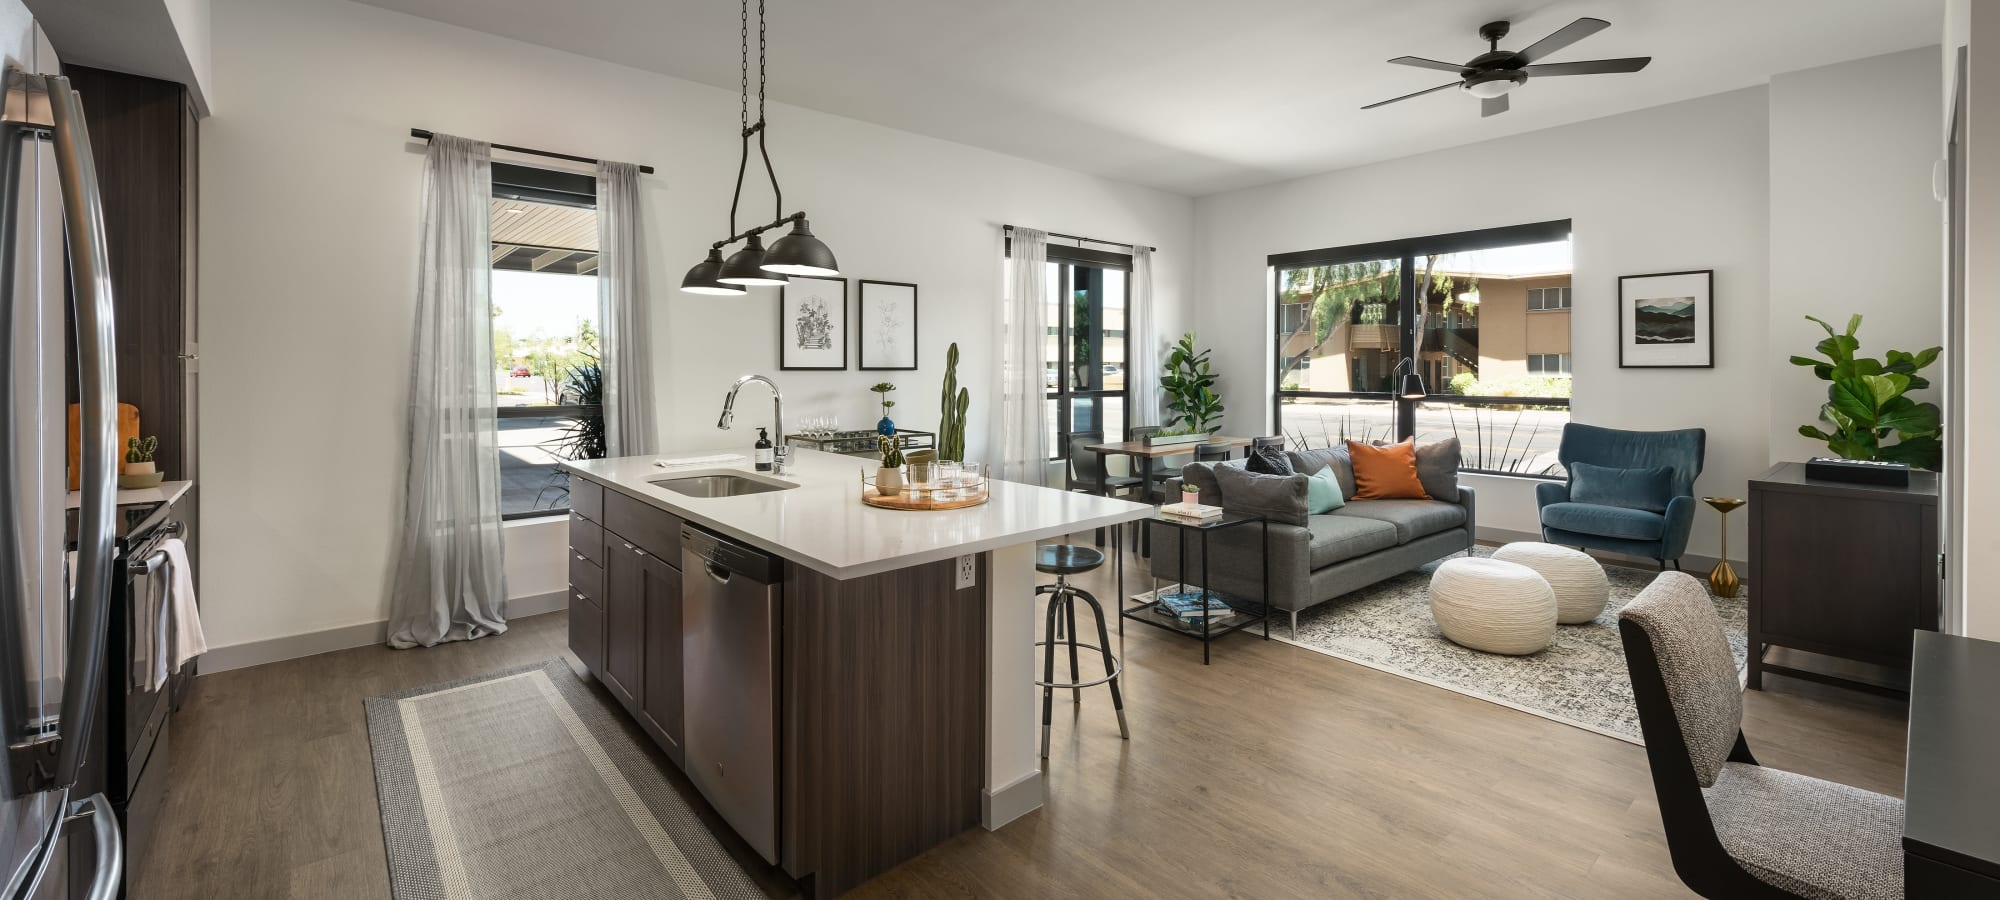 kitchen with island and stainless steel appliances at The Astor at Osborn in Phoenix, Arizona